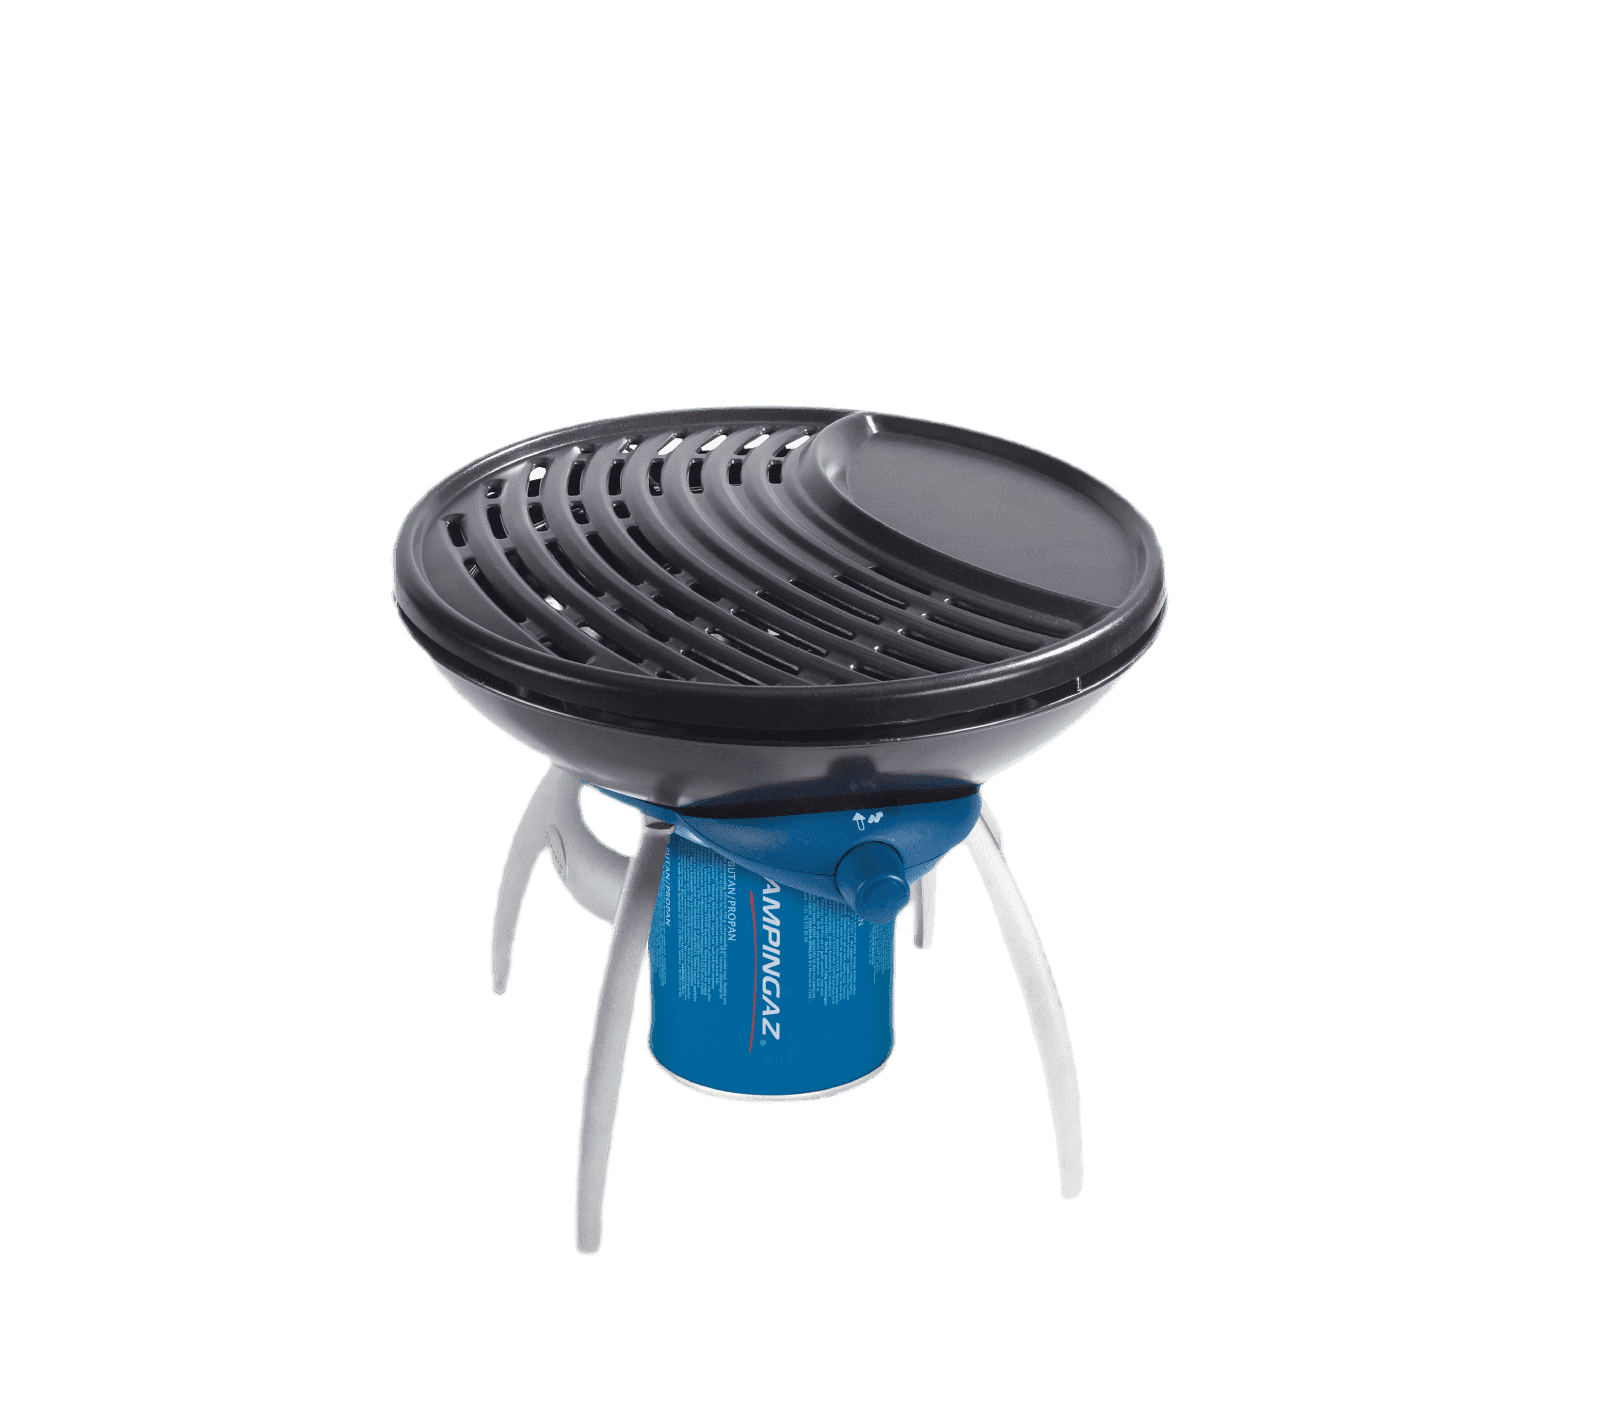 Party grill 1350w